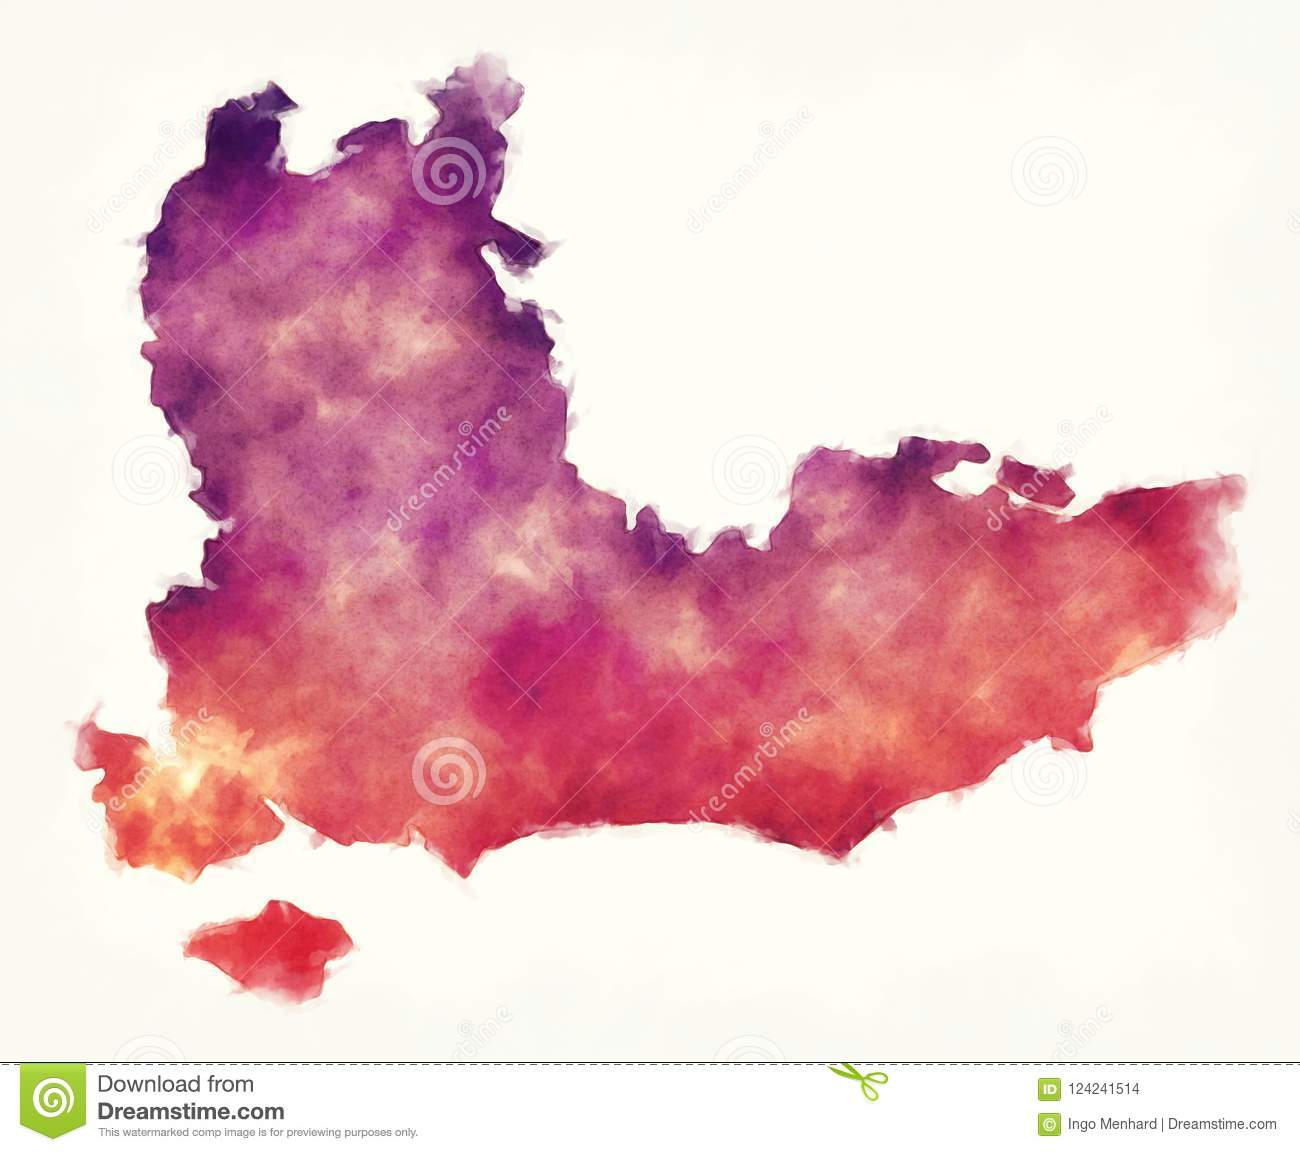 Map Of The South Of England Uk.South East England Uk Watercolor Map In Front Of A White Background